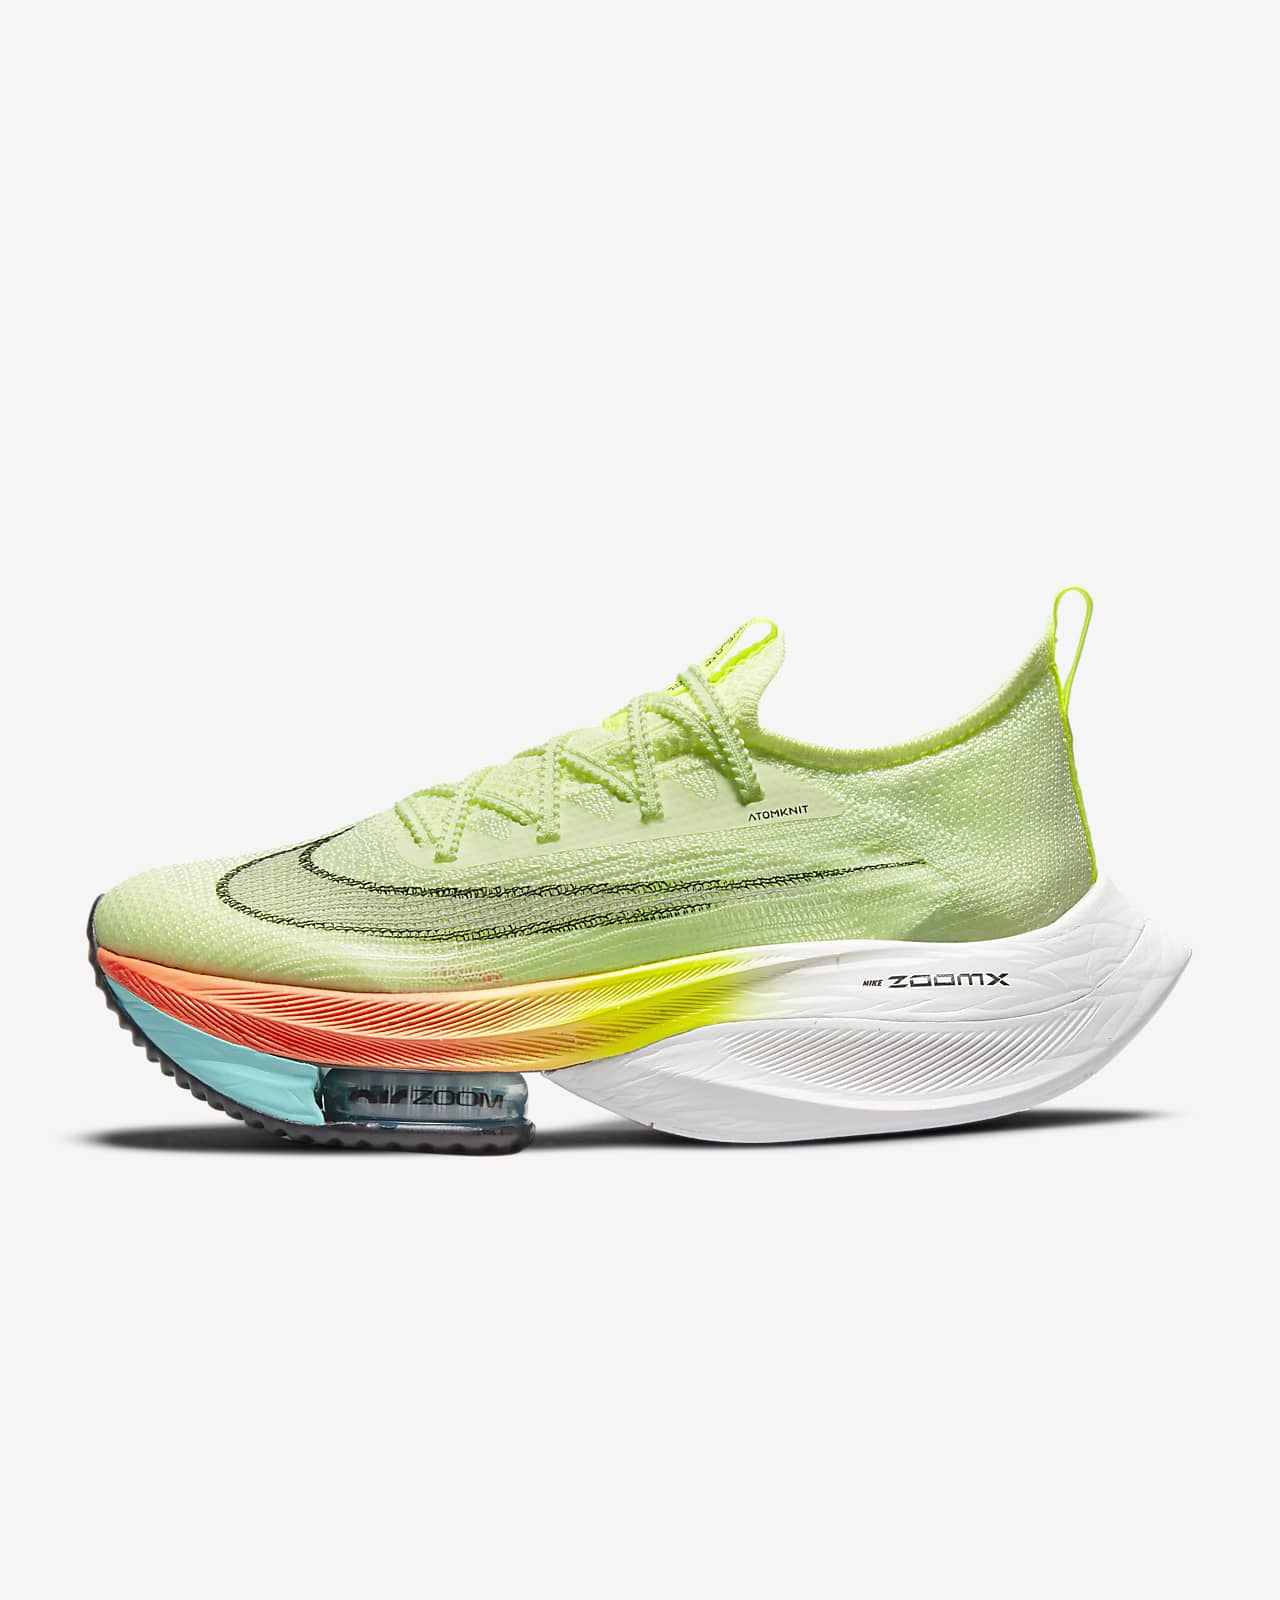 Nike Air Zoom Alphafly NEXT% Women's Road Racing Shoes